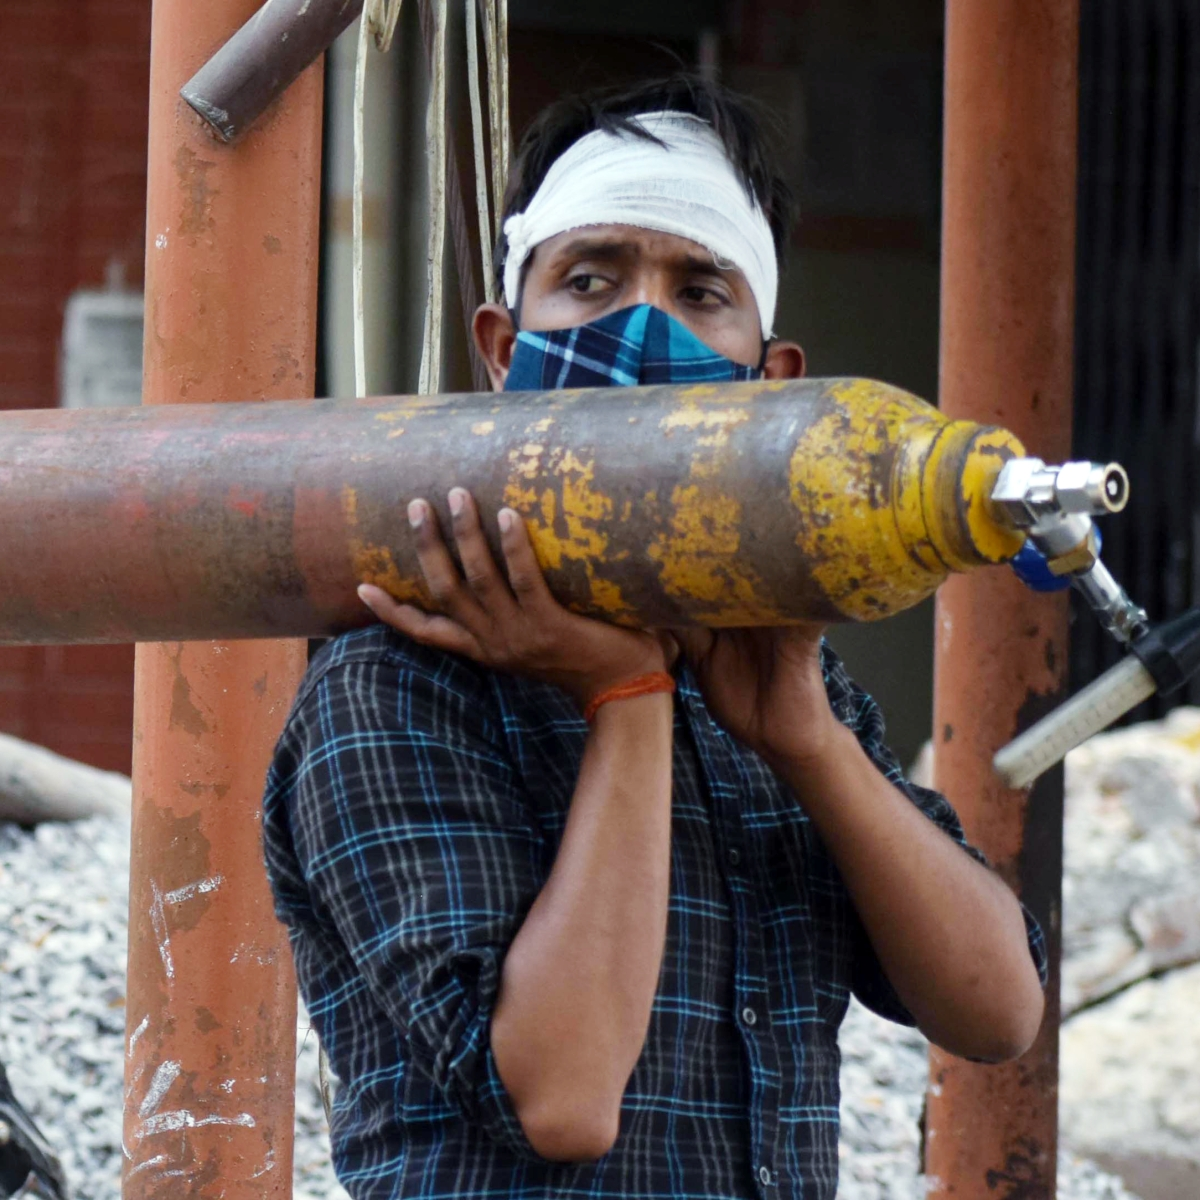 'Cry for help': Delhi's oxygen crisis continues as multiple hospitals sound alarm over dwindling supply